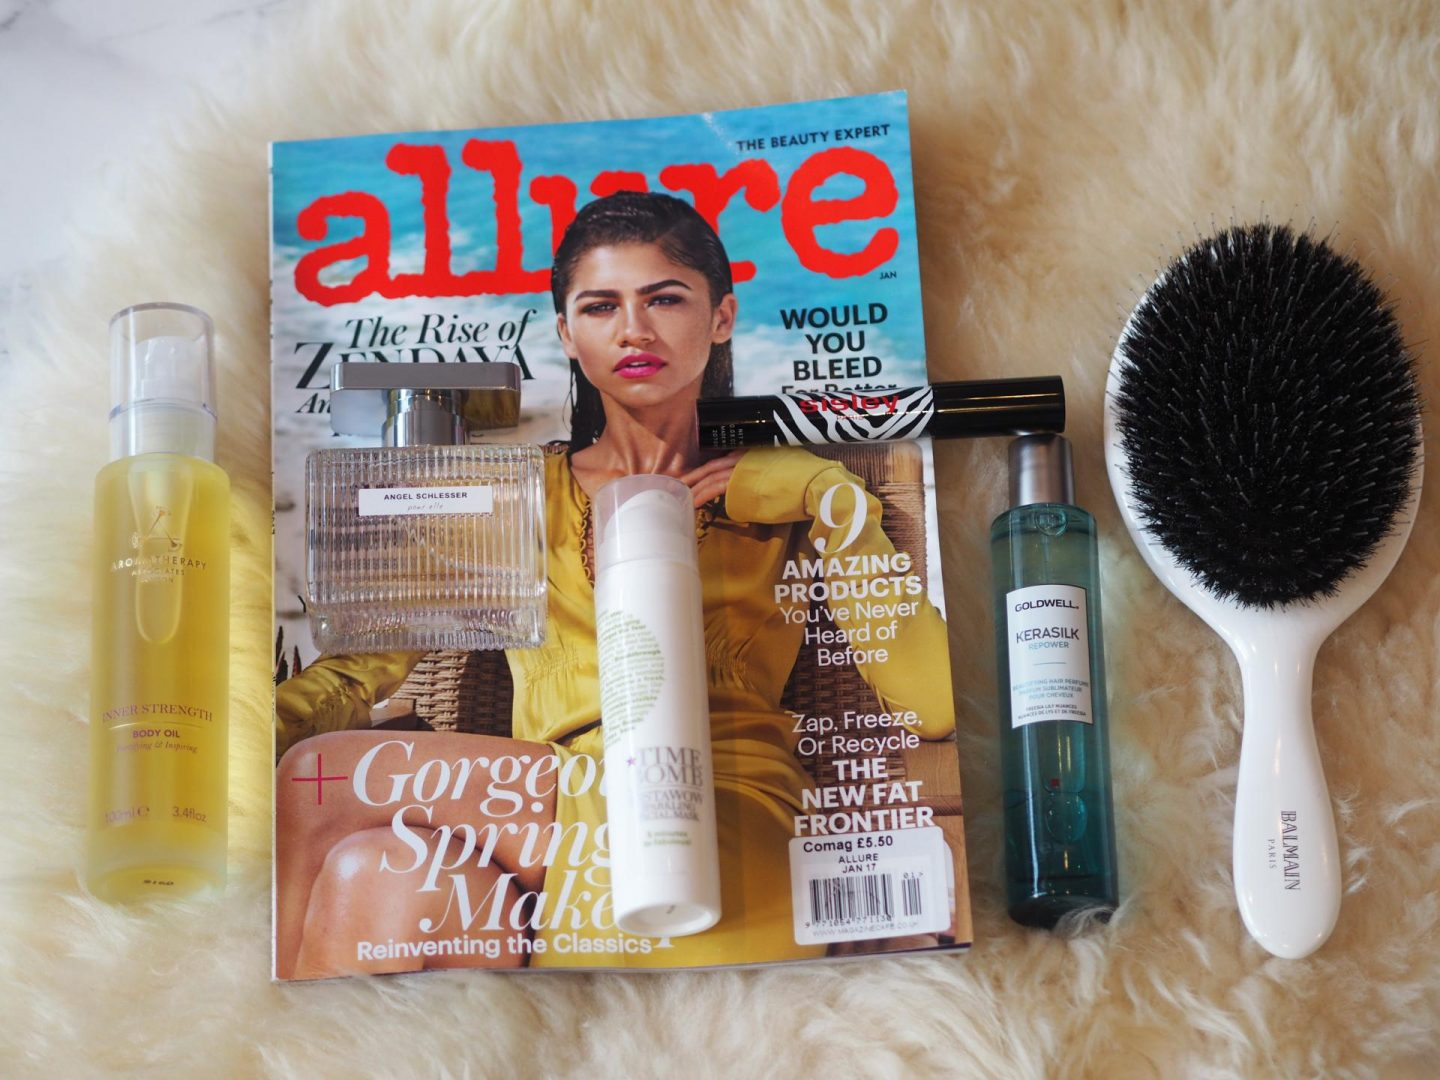 Beauty Products for January Blues with Balmain Hair Brush and Sisley Phyto-Lip twist